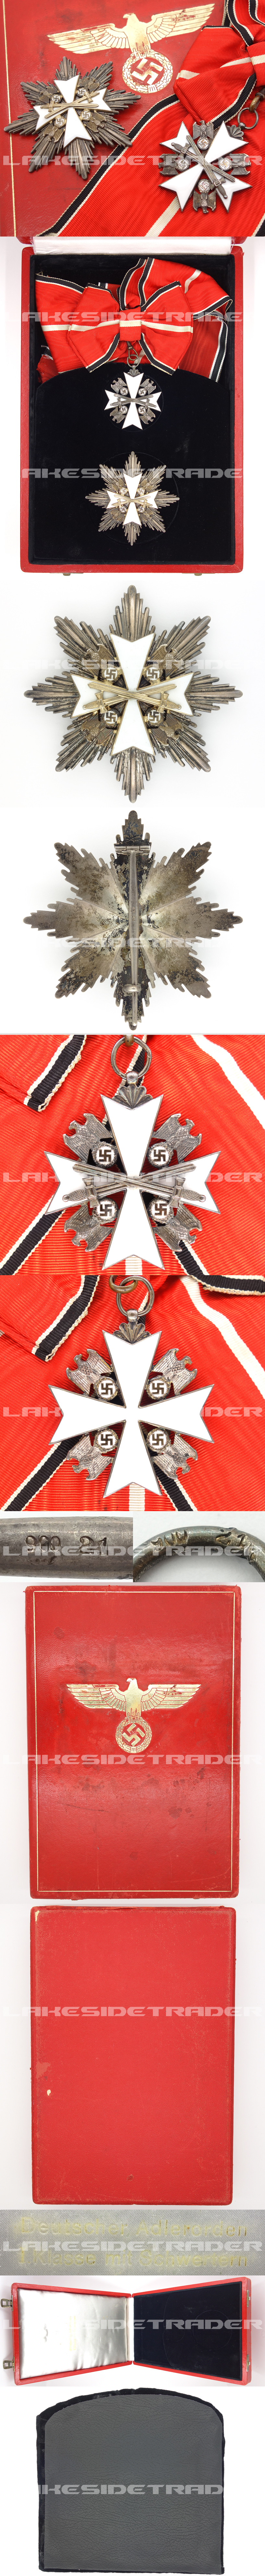 Cased 1st Class Order of the German Eagle with Swords by Godet